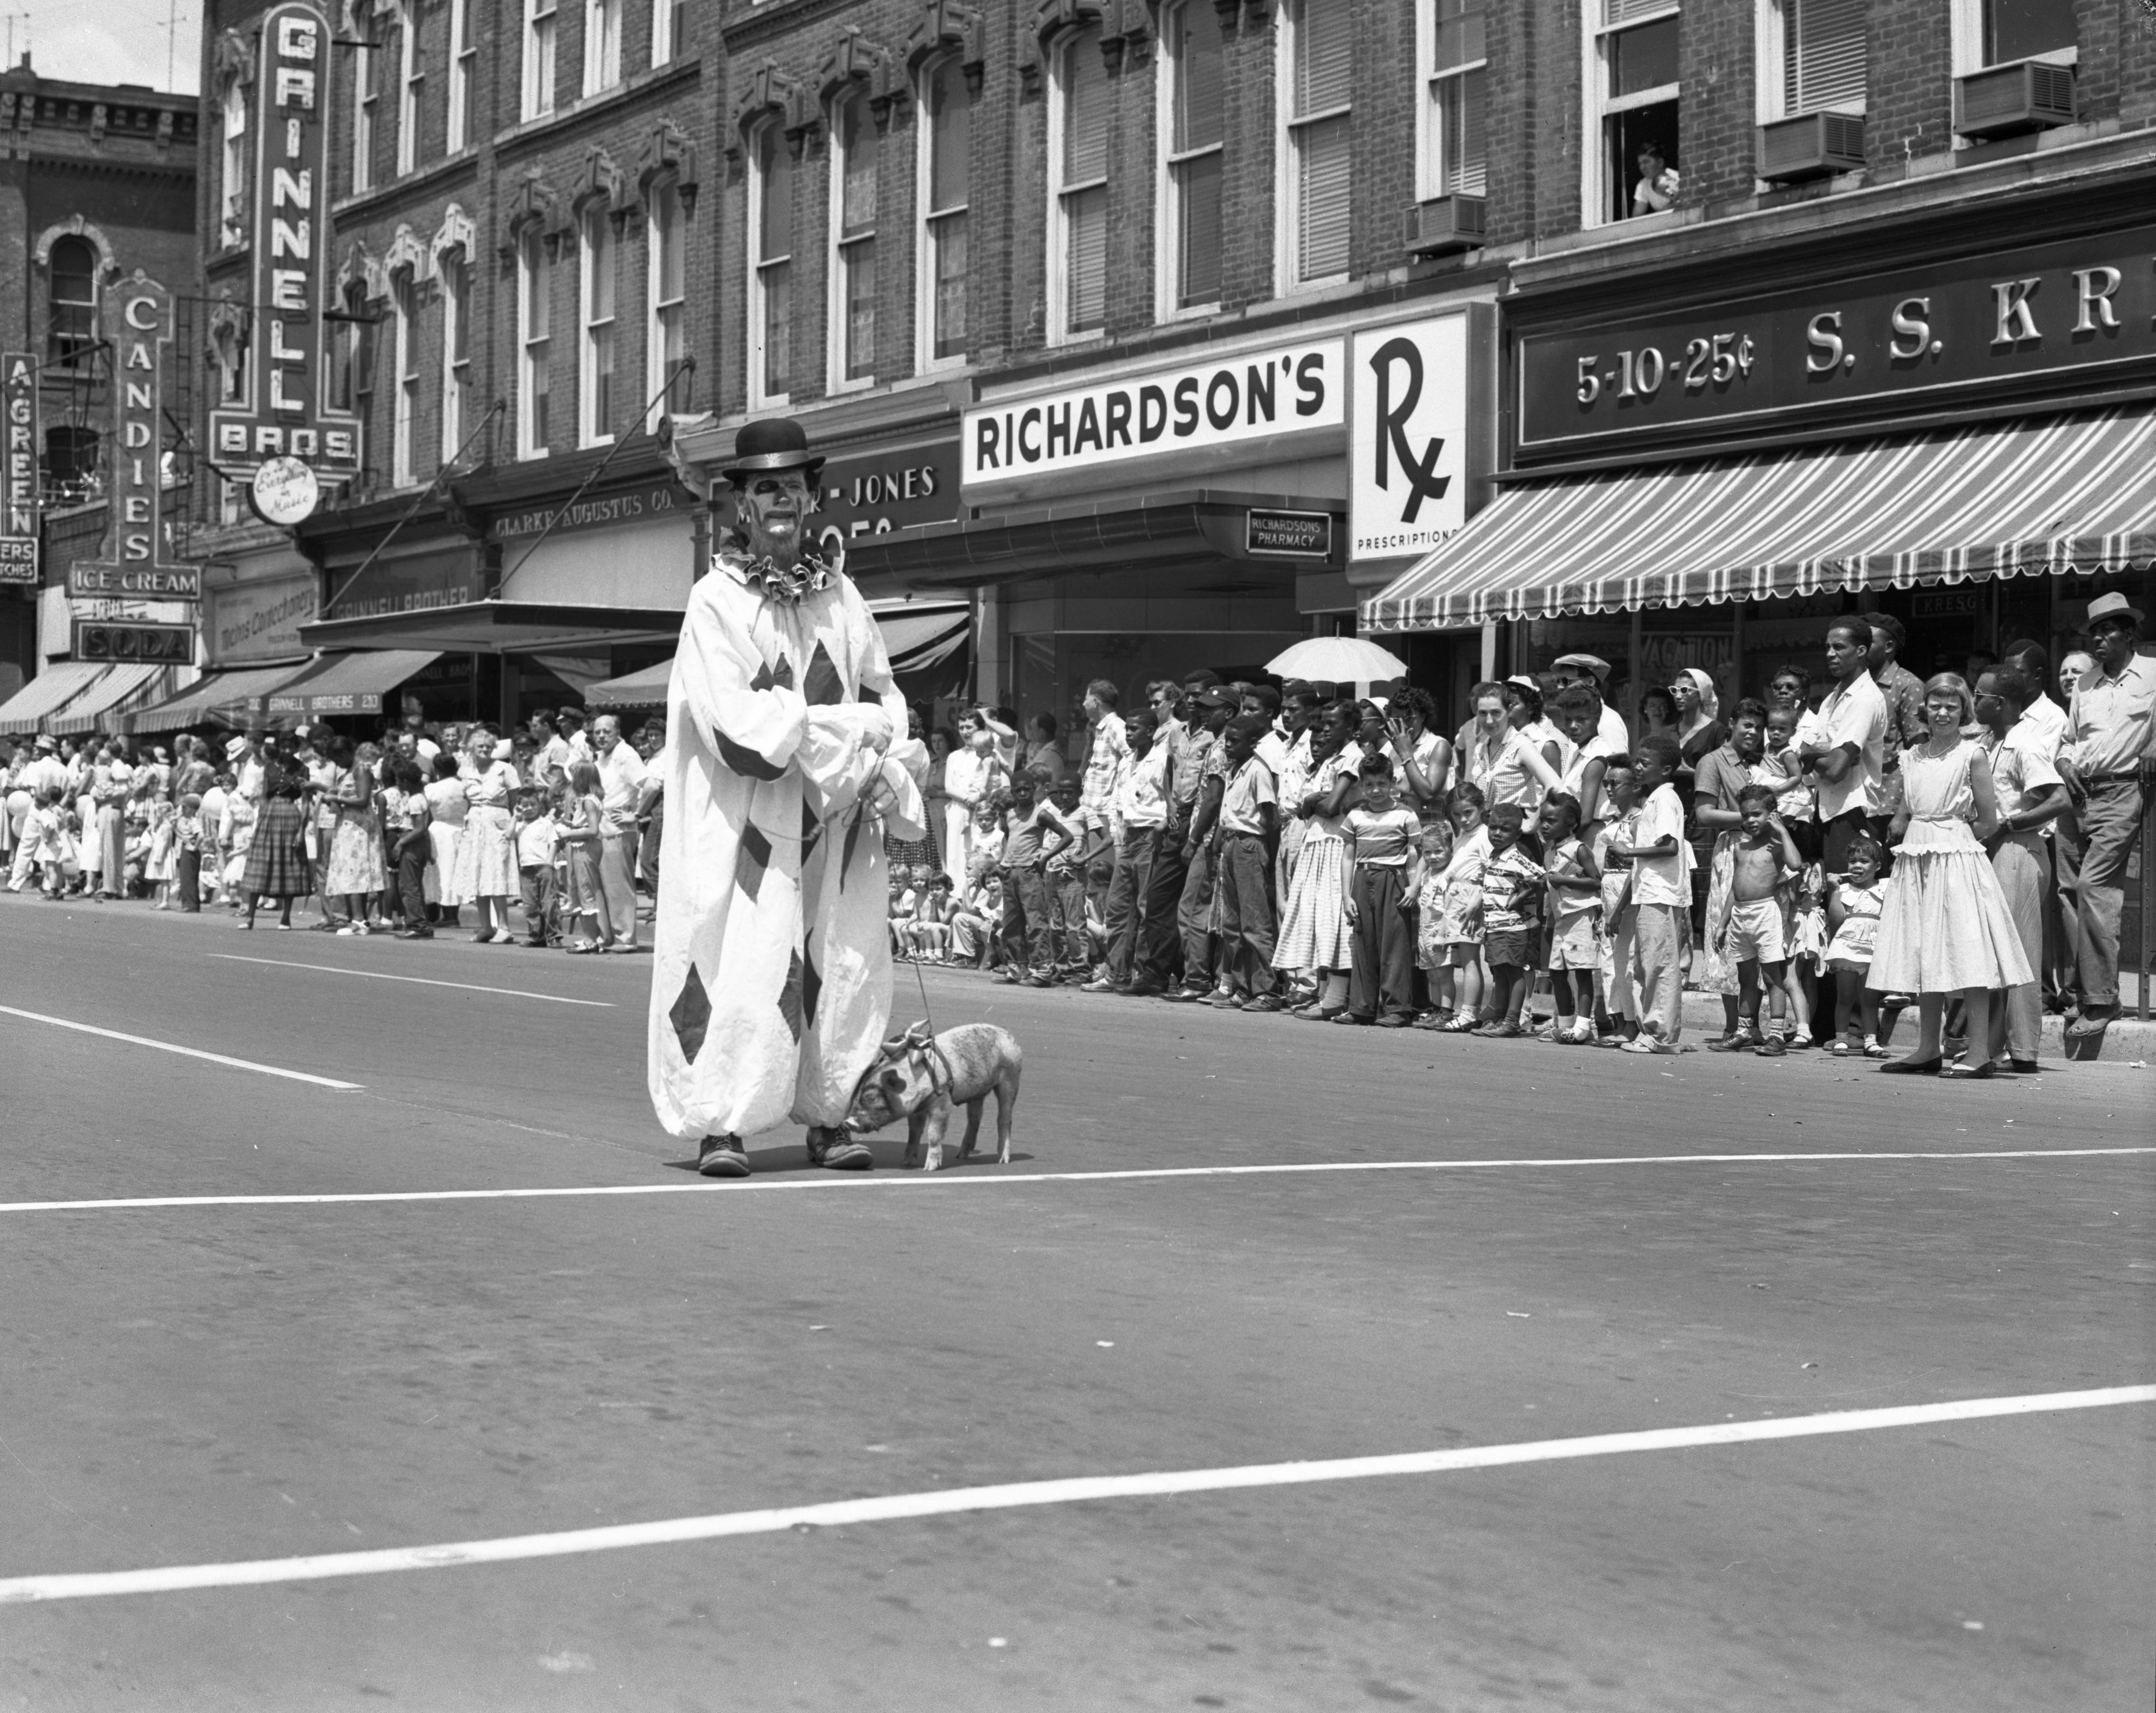 Clown Ben Moyer and Pet Pig March in Ypsilanti Fourth of July Parade, July 1955 image